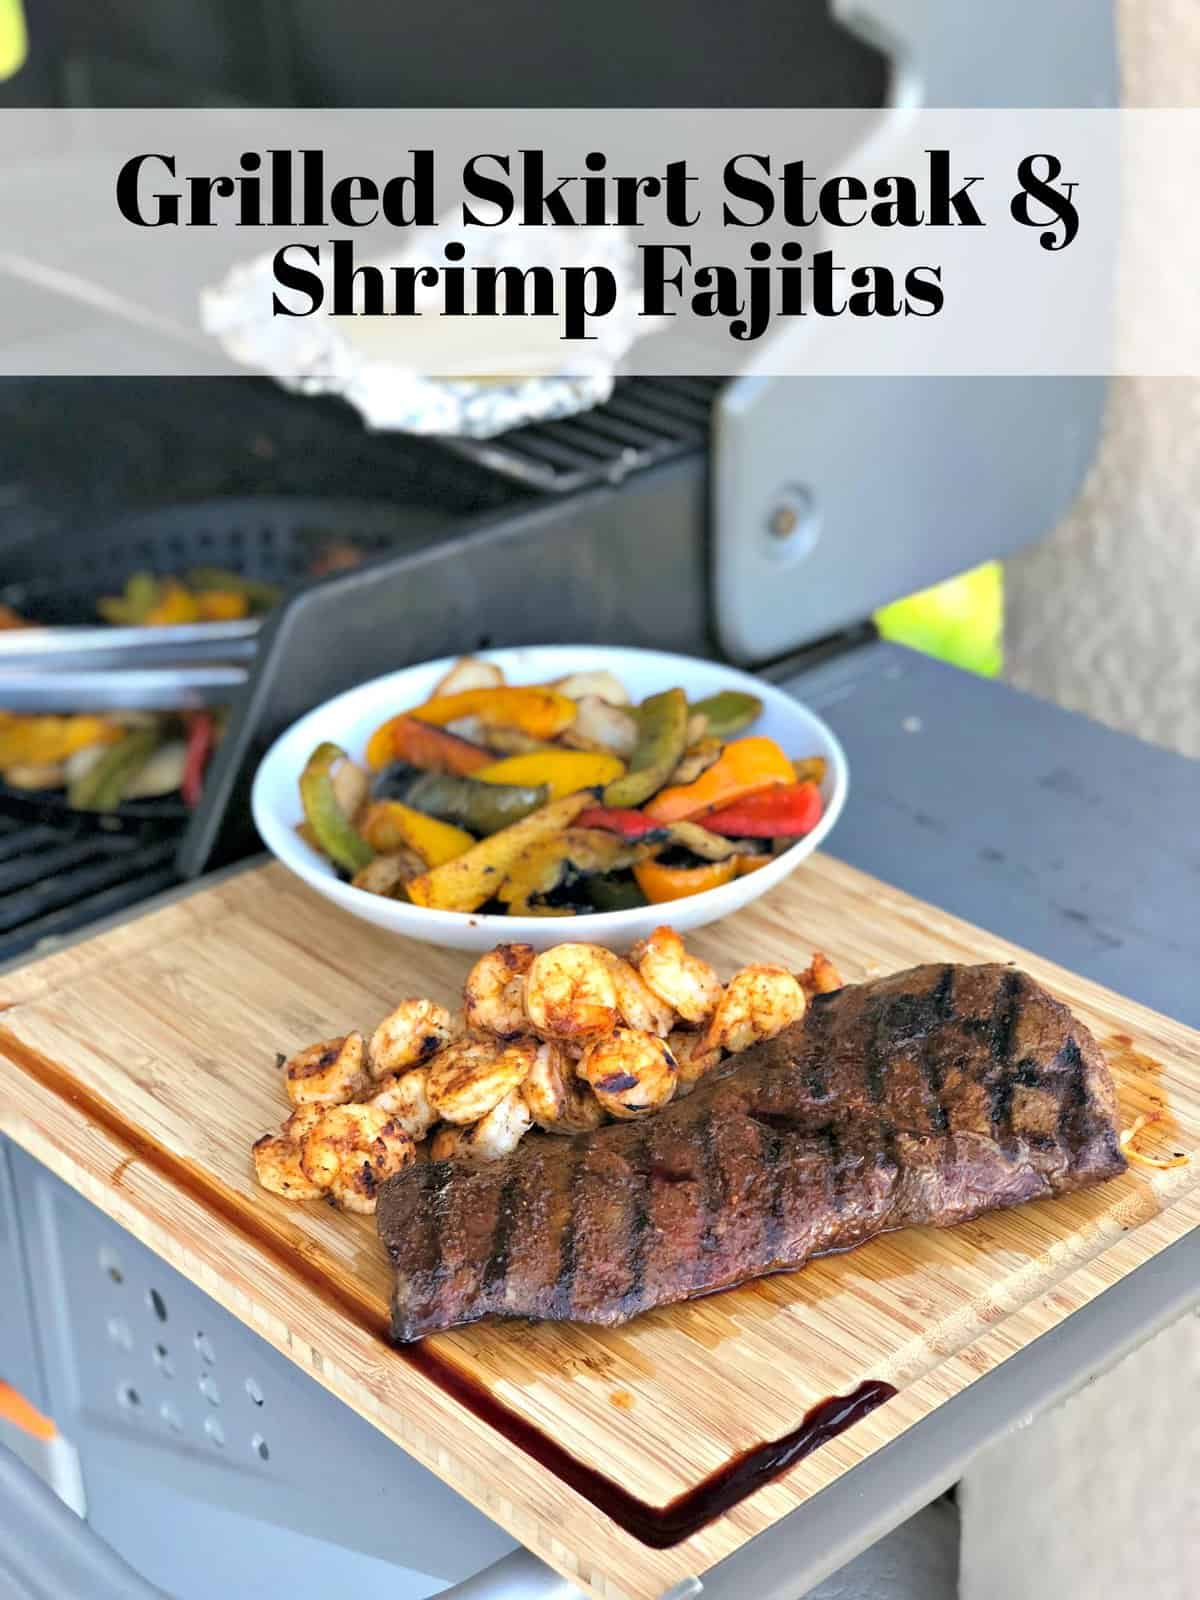 Grilled Skirt Steak next to grilled shrimp and peppers on wooden board with title text next to grill.